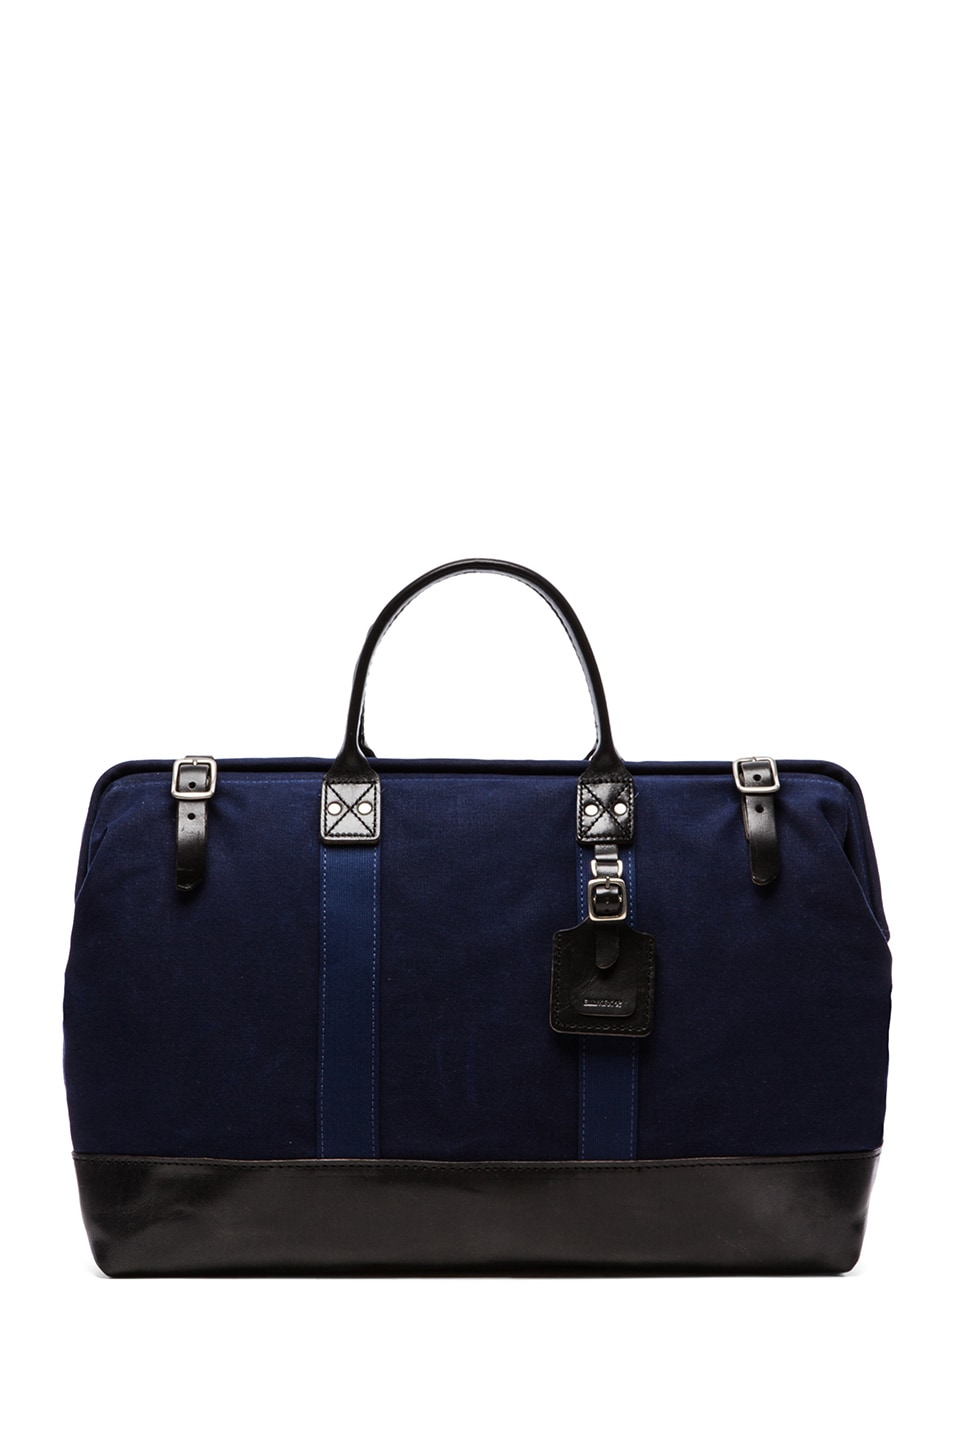 Billykirk No. 166 Large Carryall in Navy Wax & Black